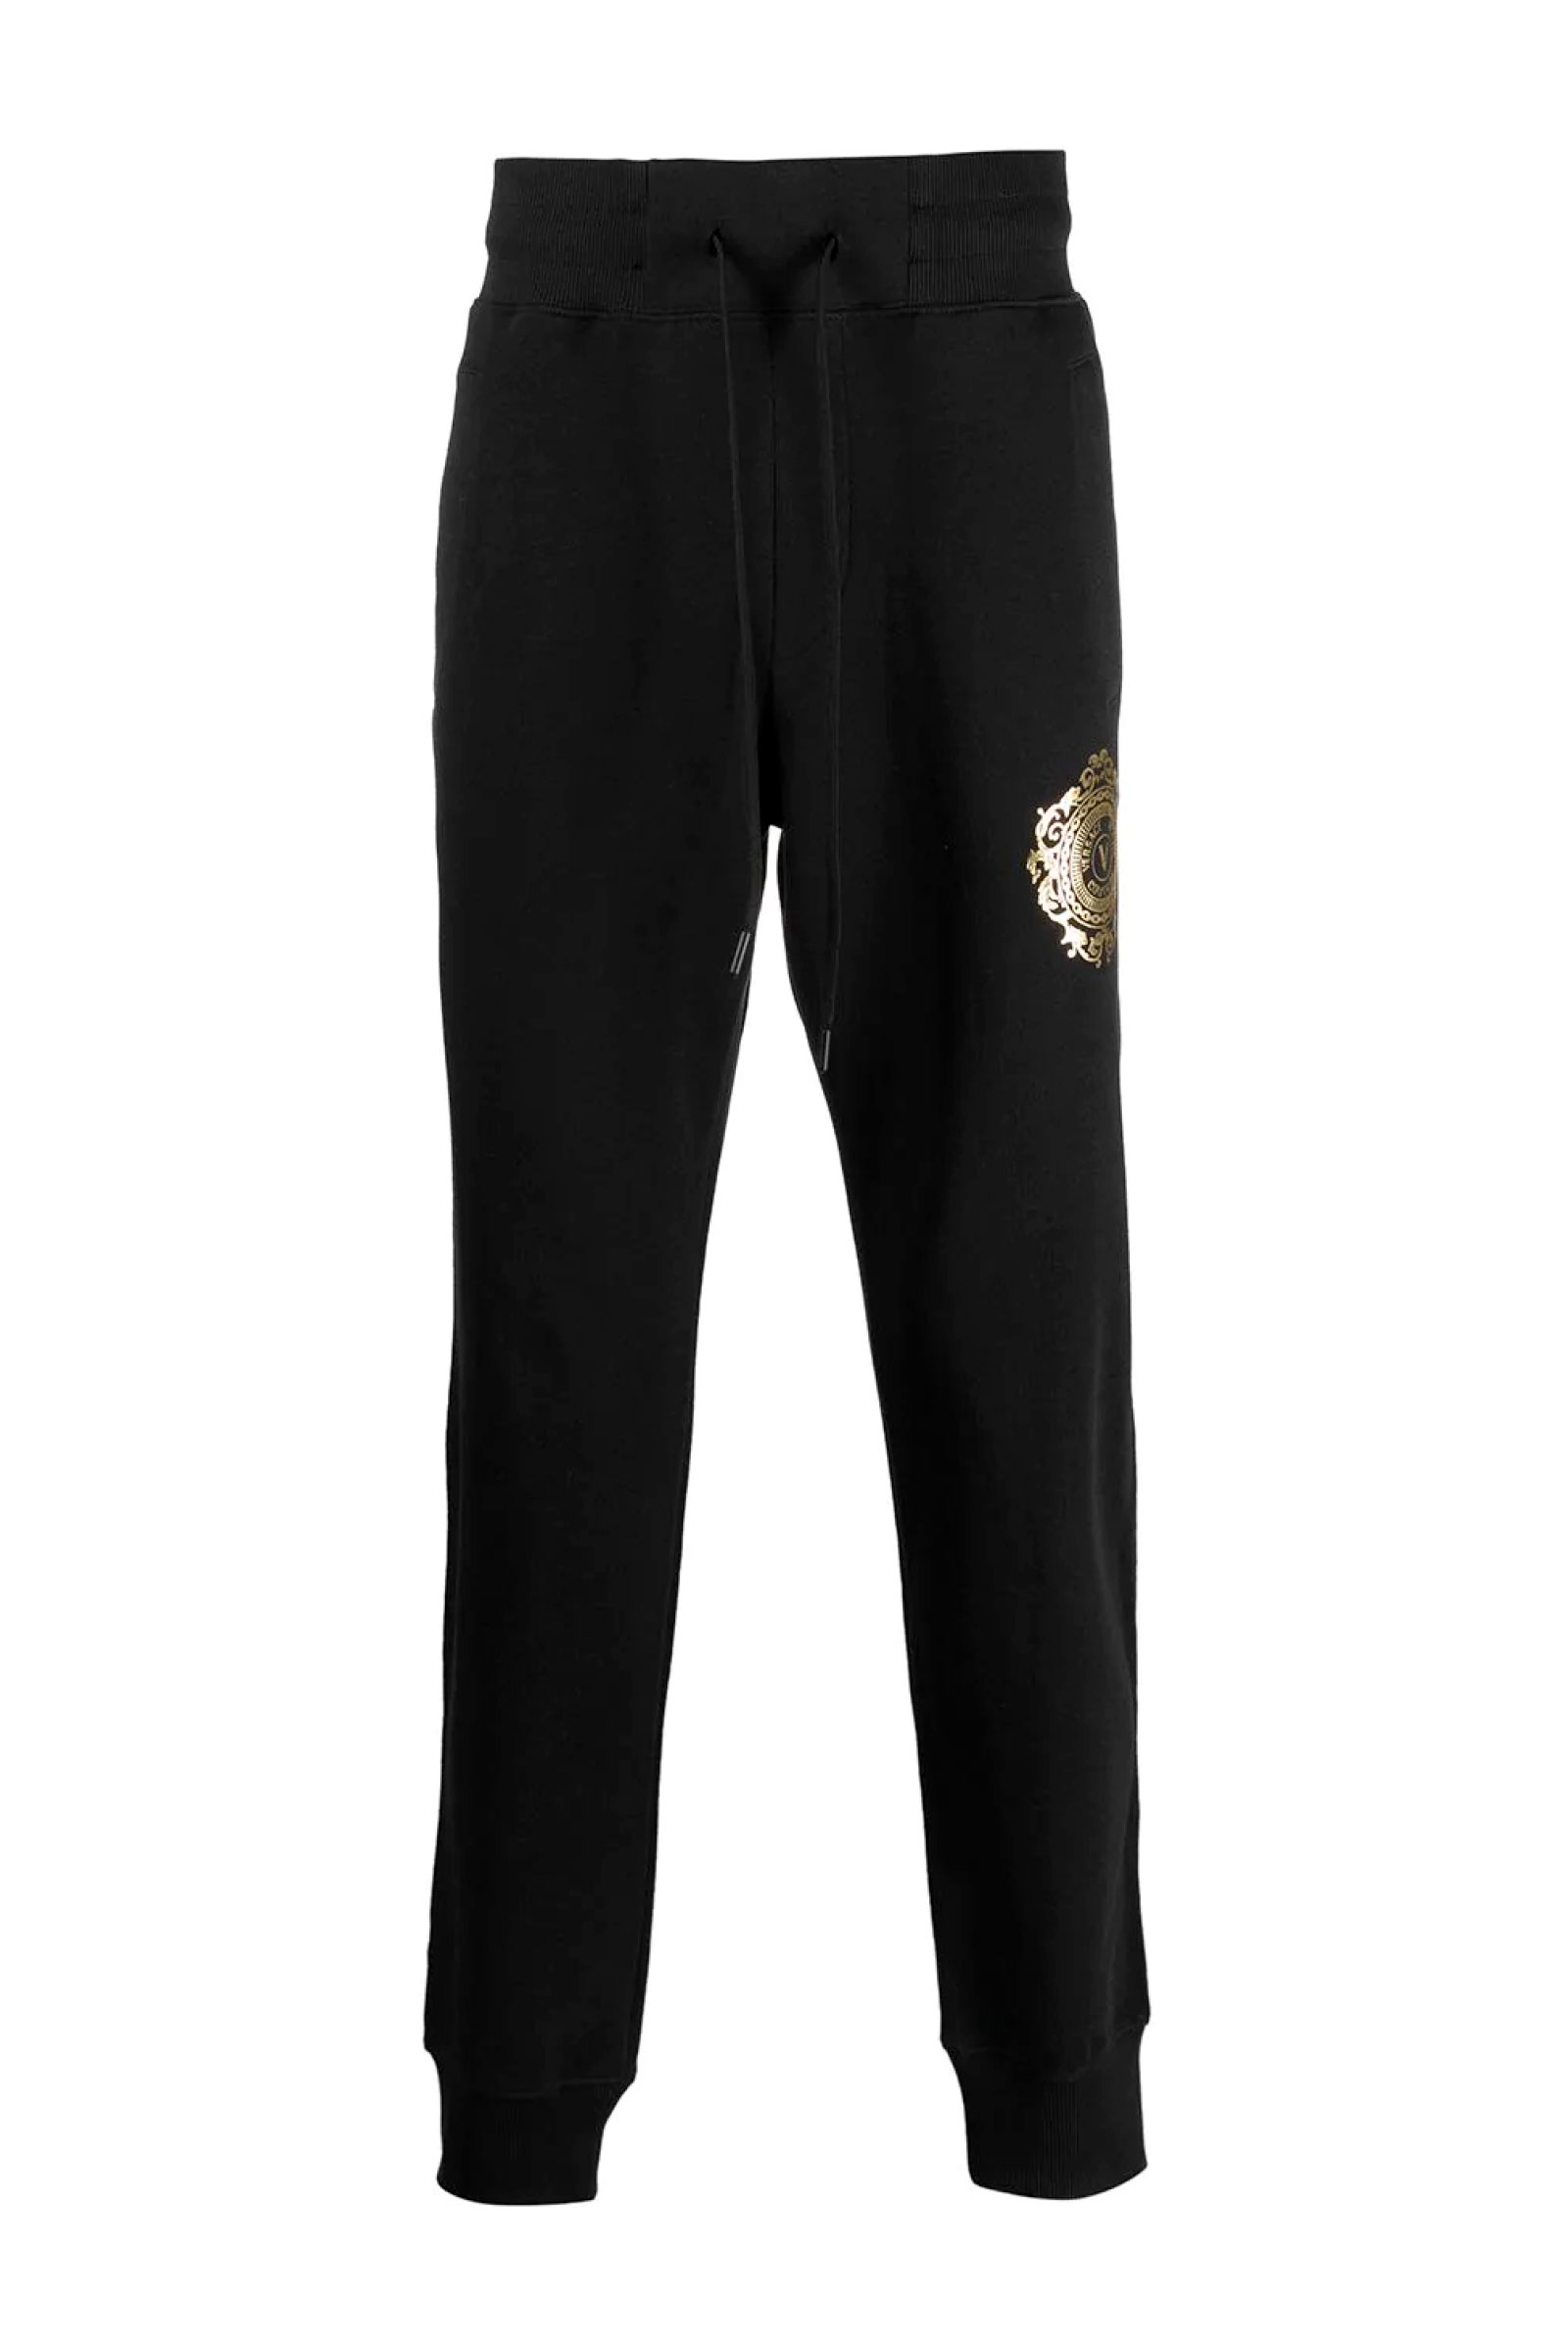 VERSACE JEANS COUTURE Men's trousers VERSACE JEANS COUTURE | Trousers | A2GWA13F30453K42